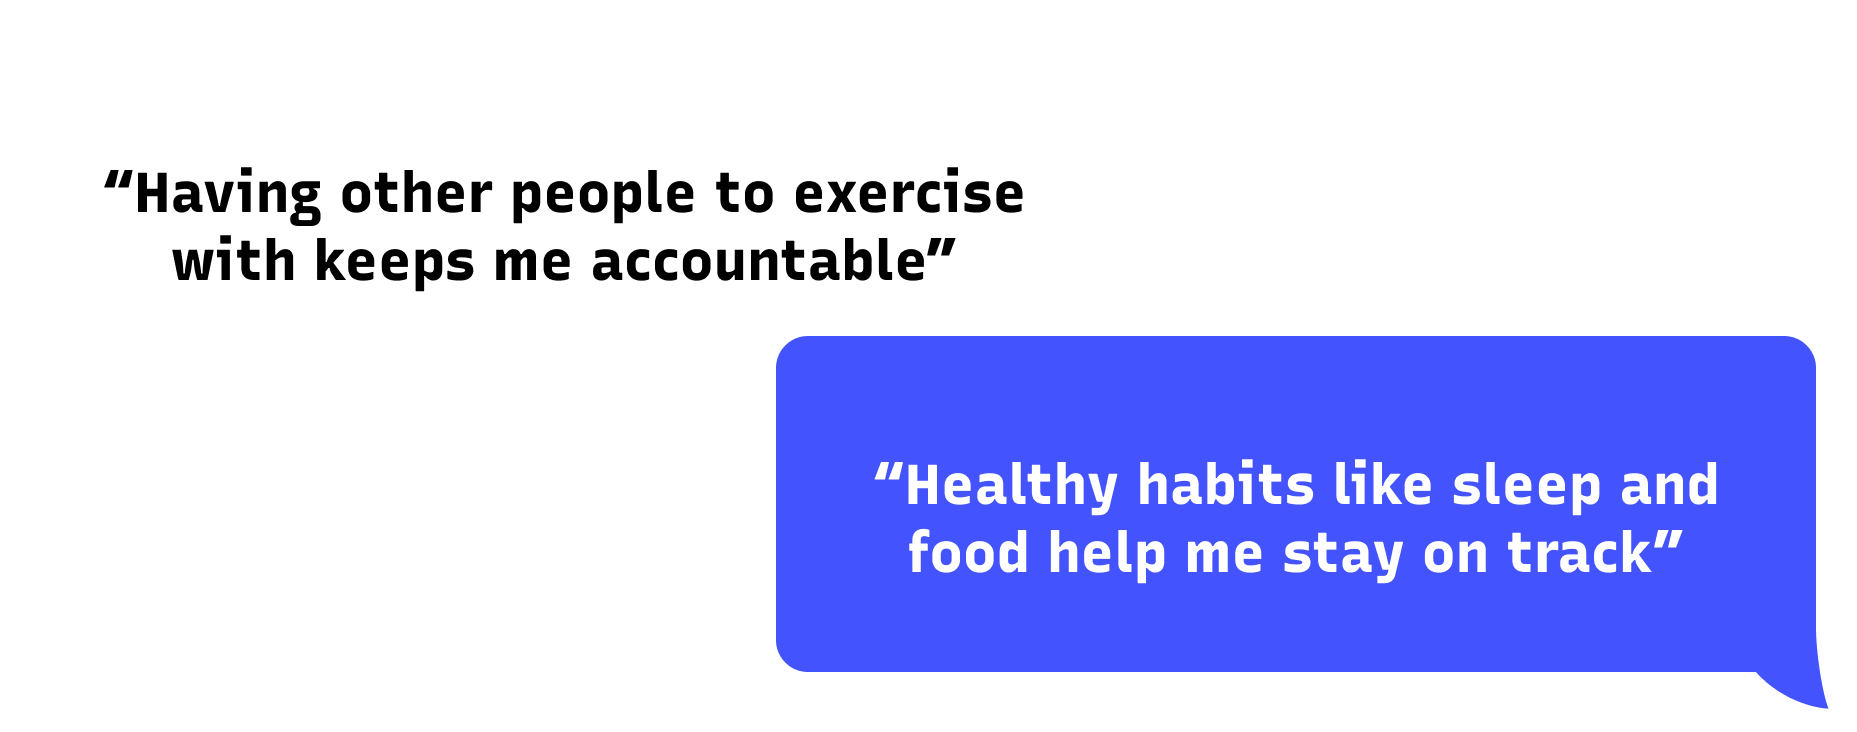 response 1: Having other people to exercise with keeps me accountable. Response 2: Healthy habits like sleep and food help me stay on track